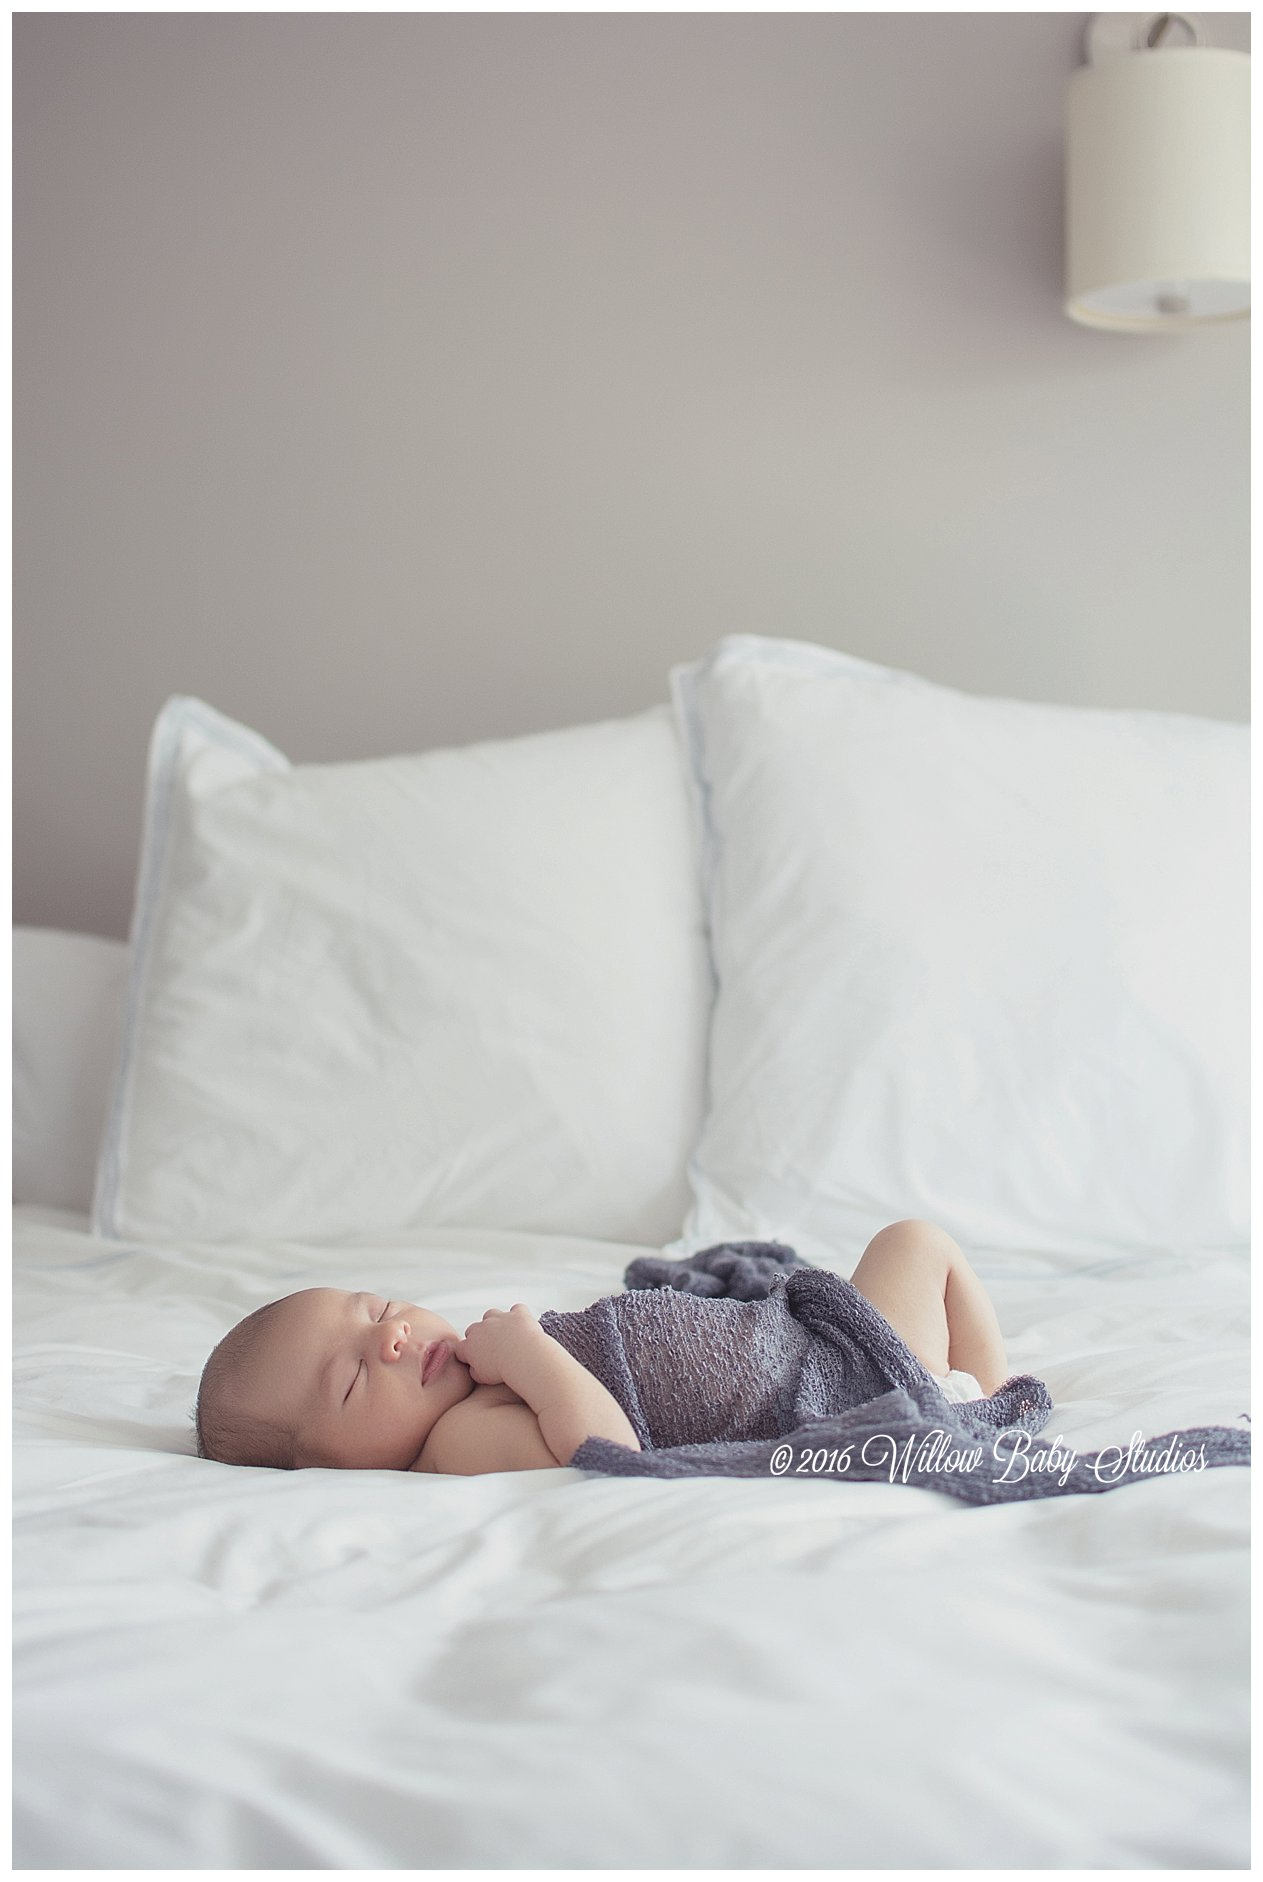 newborn-sleeping-alone-on-parent's-bed